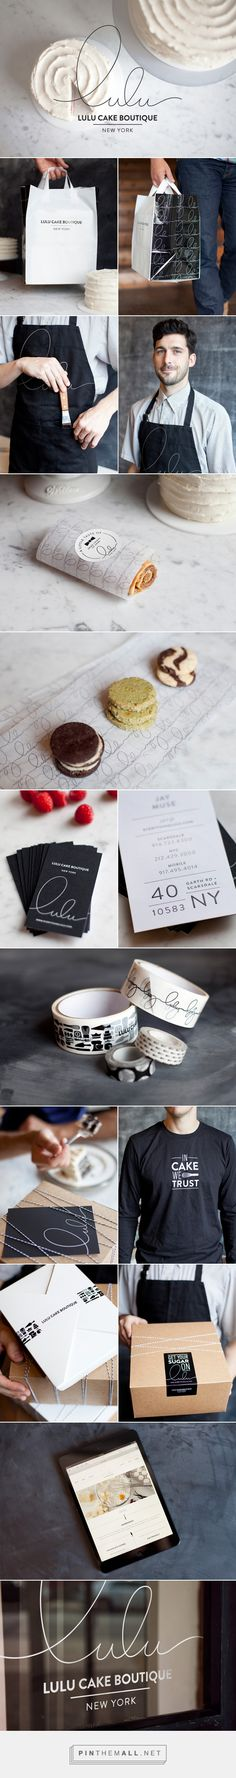 New Brand Identity for Lulu Cake Boutique by Peck and Co - BP&O. Graphic design, Branding, packaging.... - a grouped images picture - Pin Them All